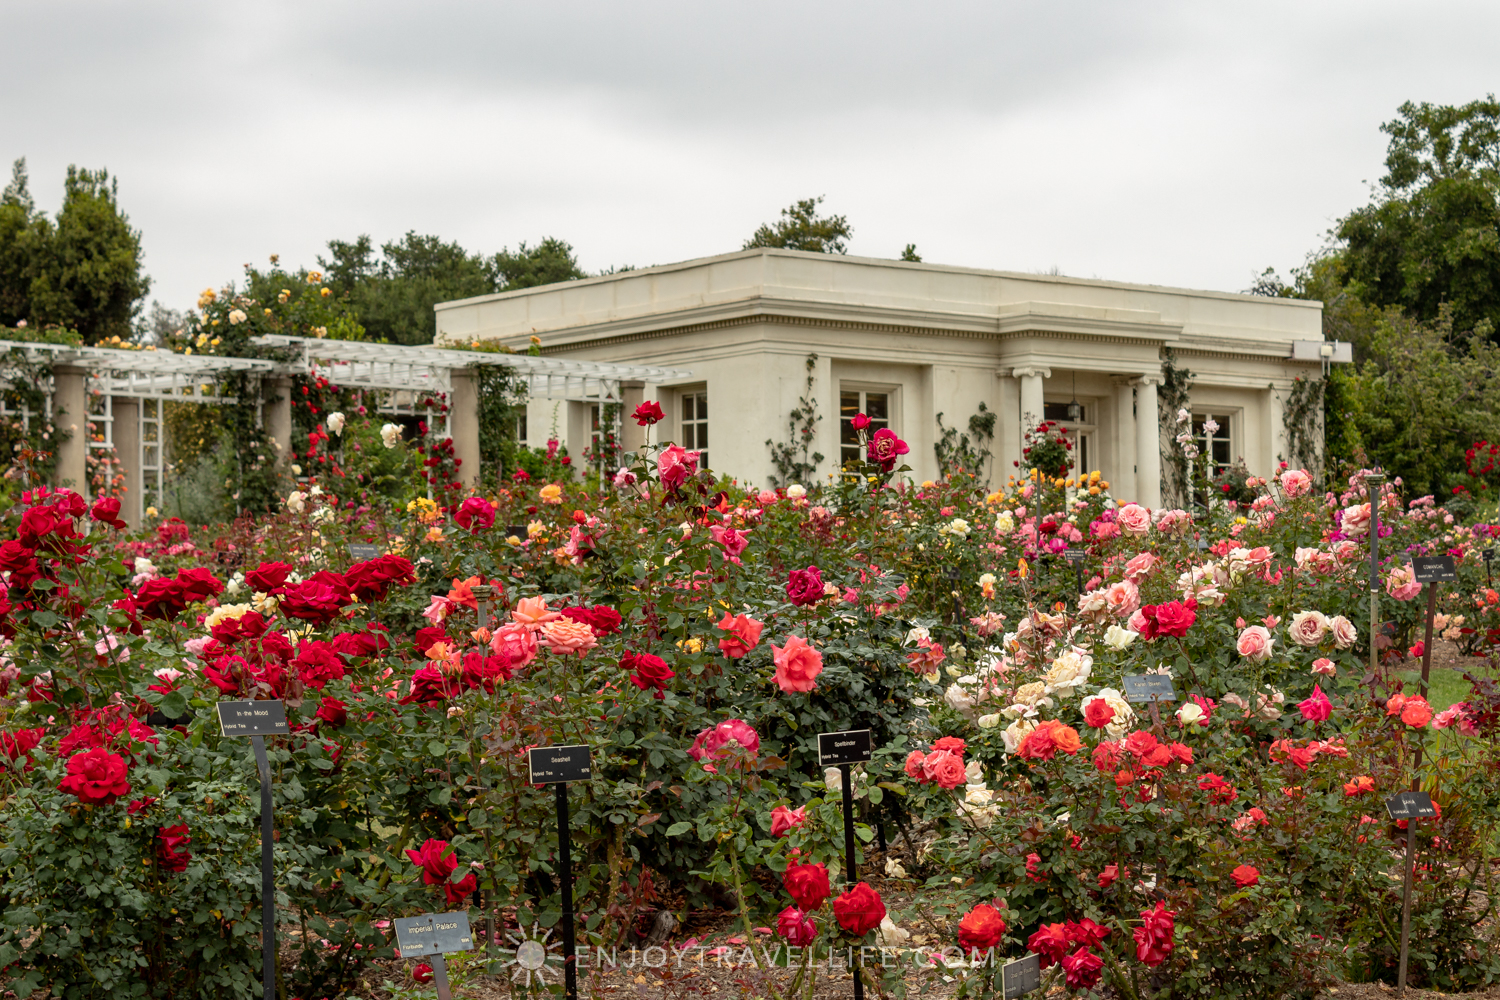 The Tea Room at The Huntington Rose Garden